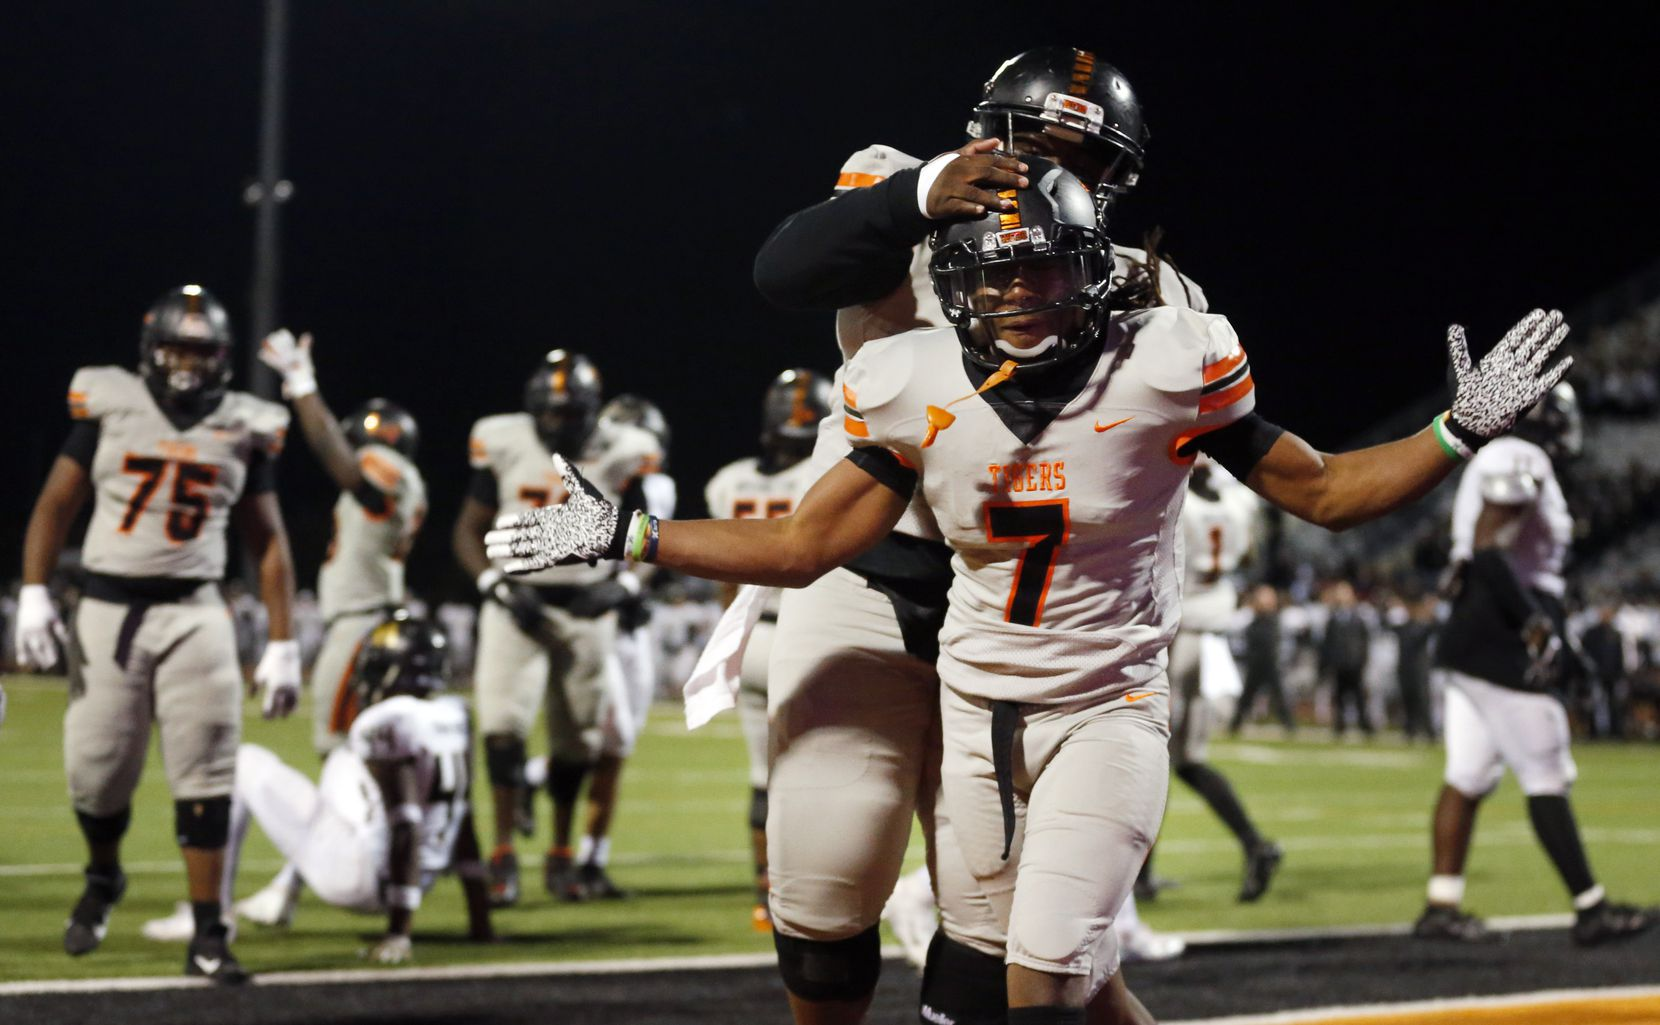 Lancaster running back Karon Neblett (7) celebrates his fourth quarter touchdown with teammate Willie Armstrong (71) against The Colony in their Class 5A Division I first-round playoff game at Tiger Stadium in Lancaster, Thursday, November 14, 2019. Lancaster won, 44-29. (Tom Fox/The Dallas Morning News)